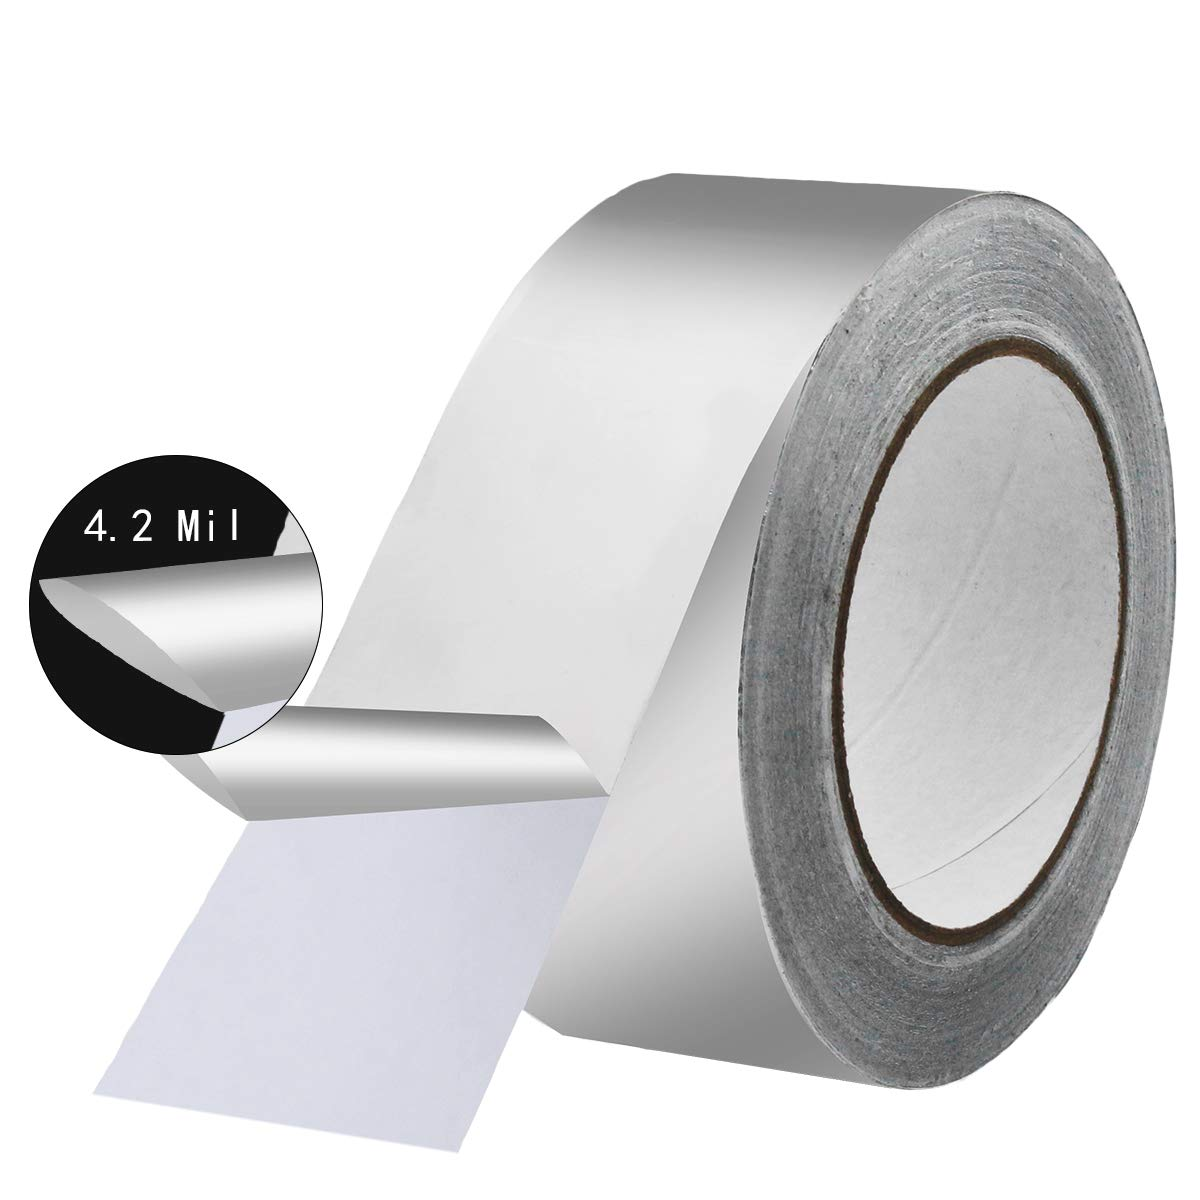 KIWIHUB 4.2 Mil (2 inch-82ft) Aluminum Tape/Aluminum Foil Tape, Silver,Good for HVAC, Sealing & Patching Hot & Cold Air Ducts, Metal Repair